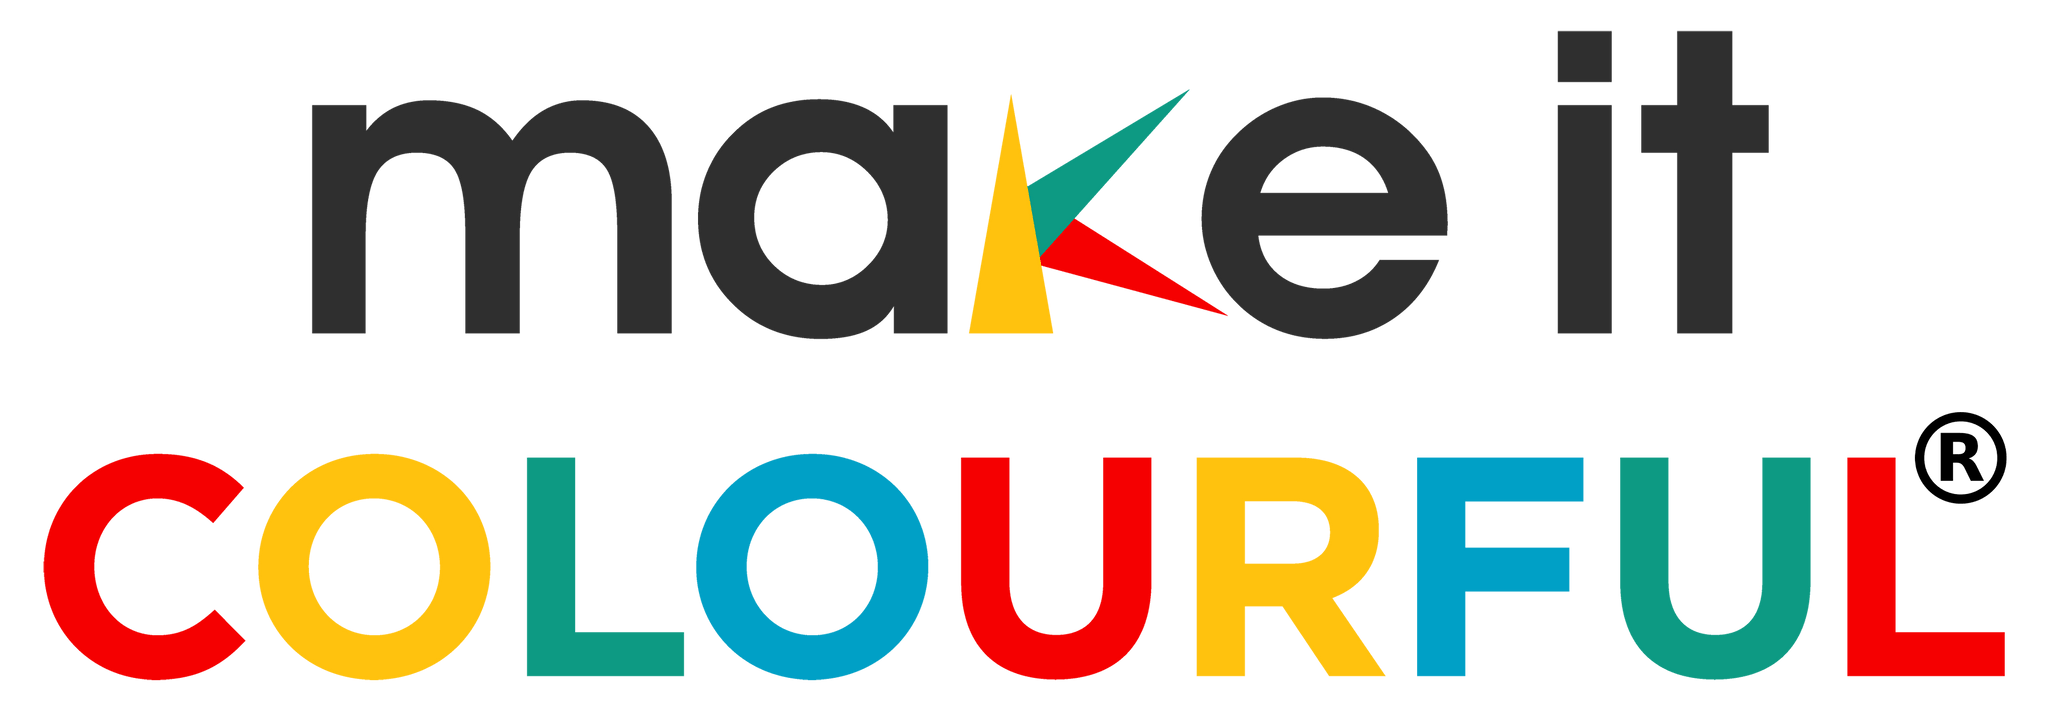 Make It Colourful Officially Registered